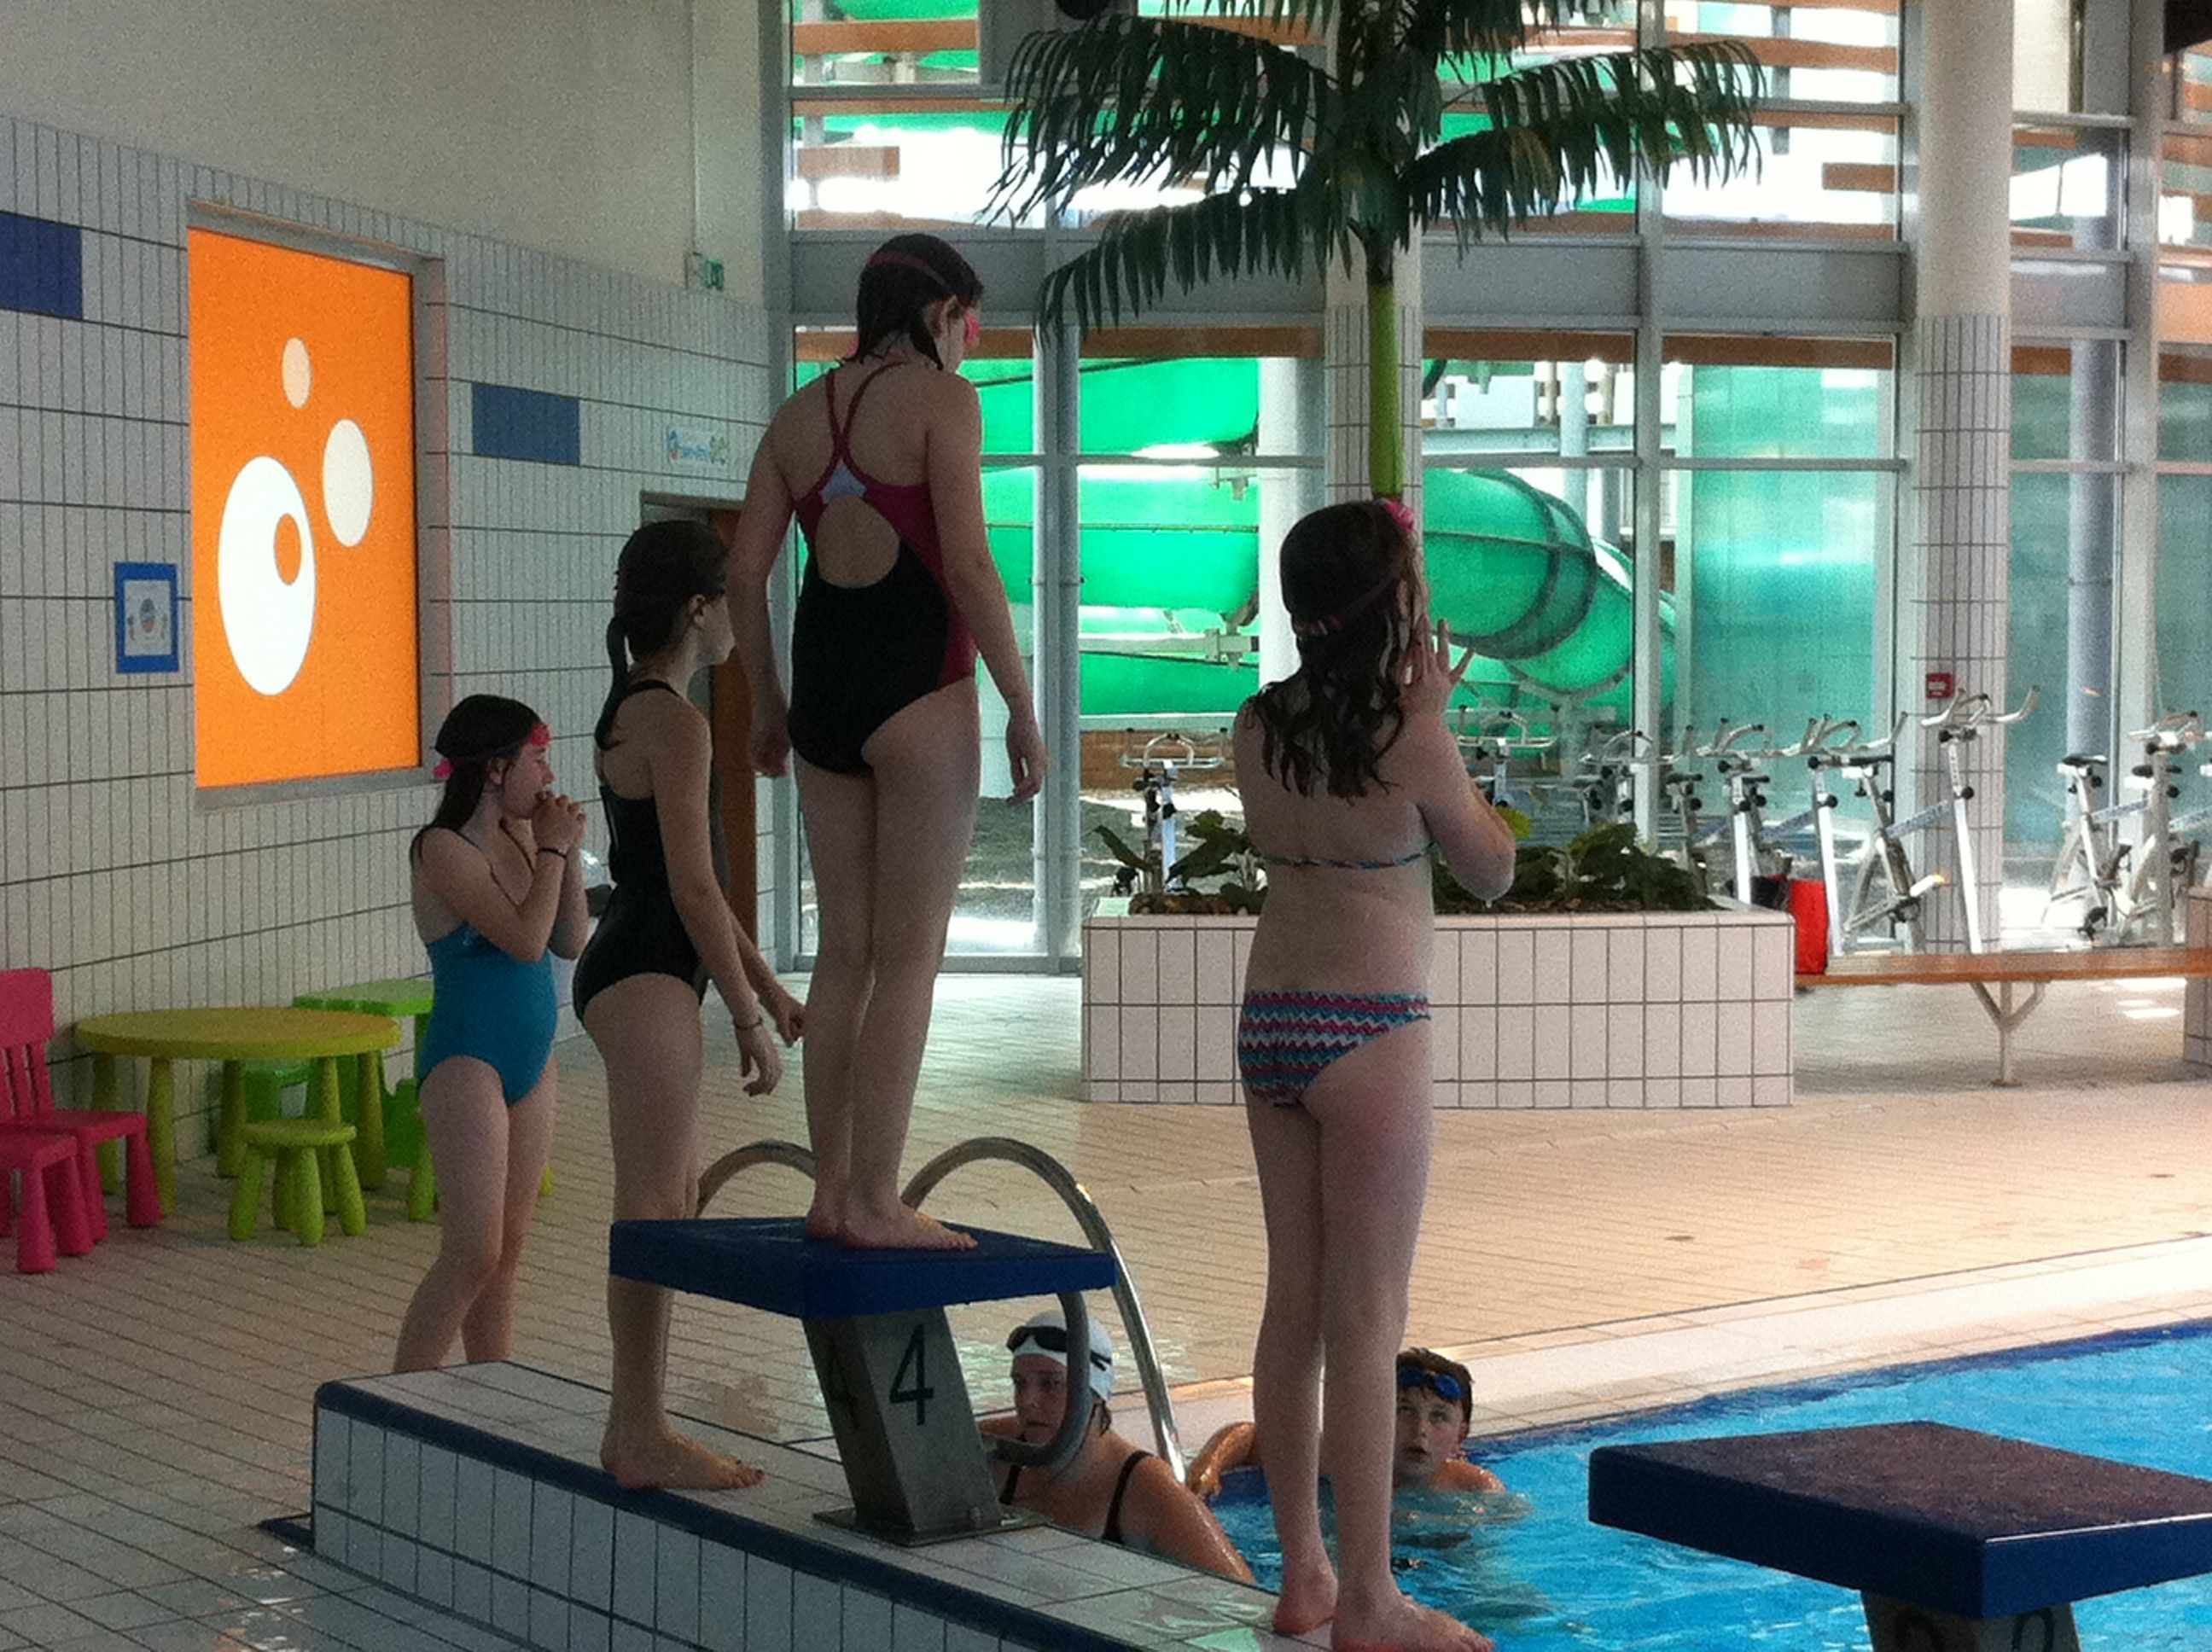 Une vir e la piscine for Carpiquet piscine